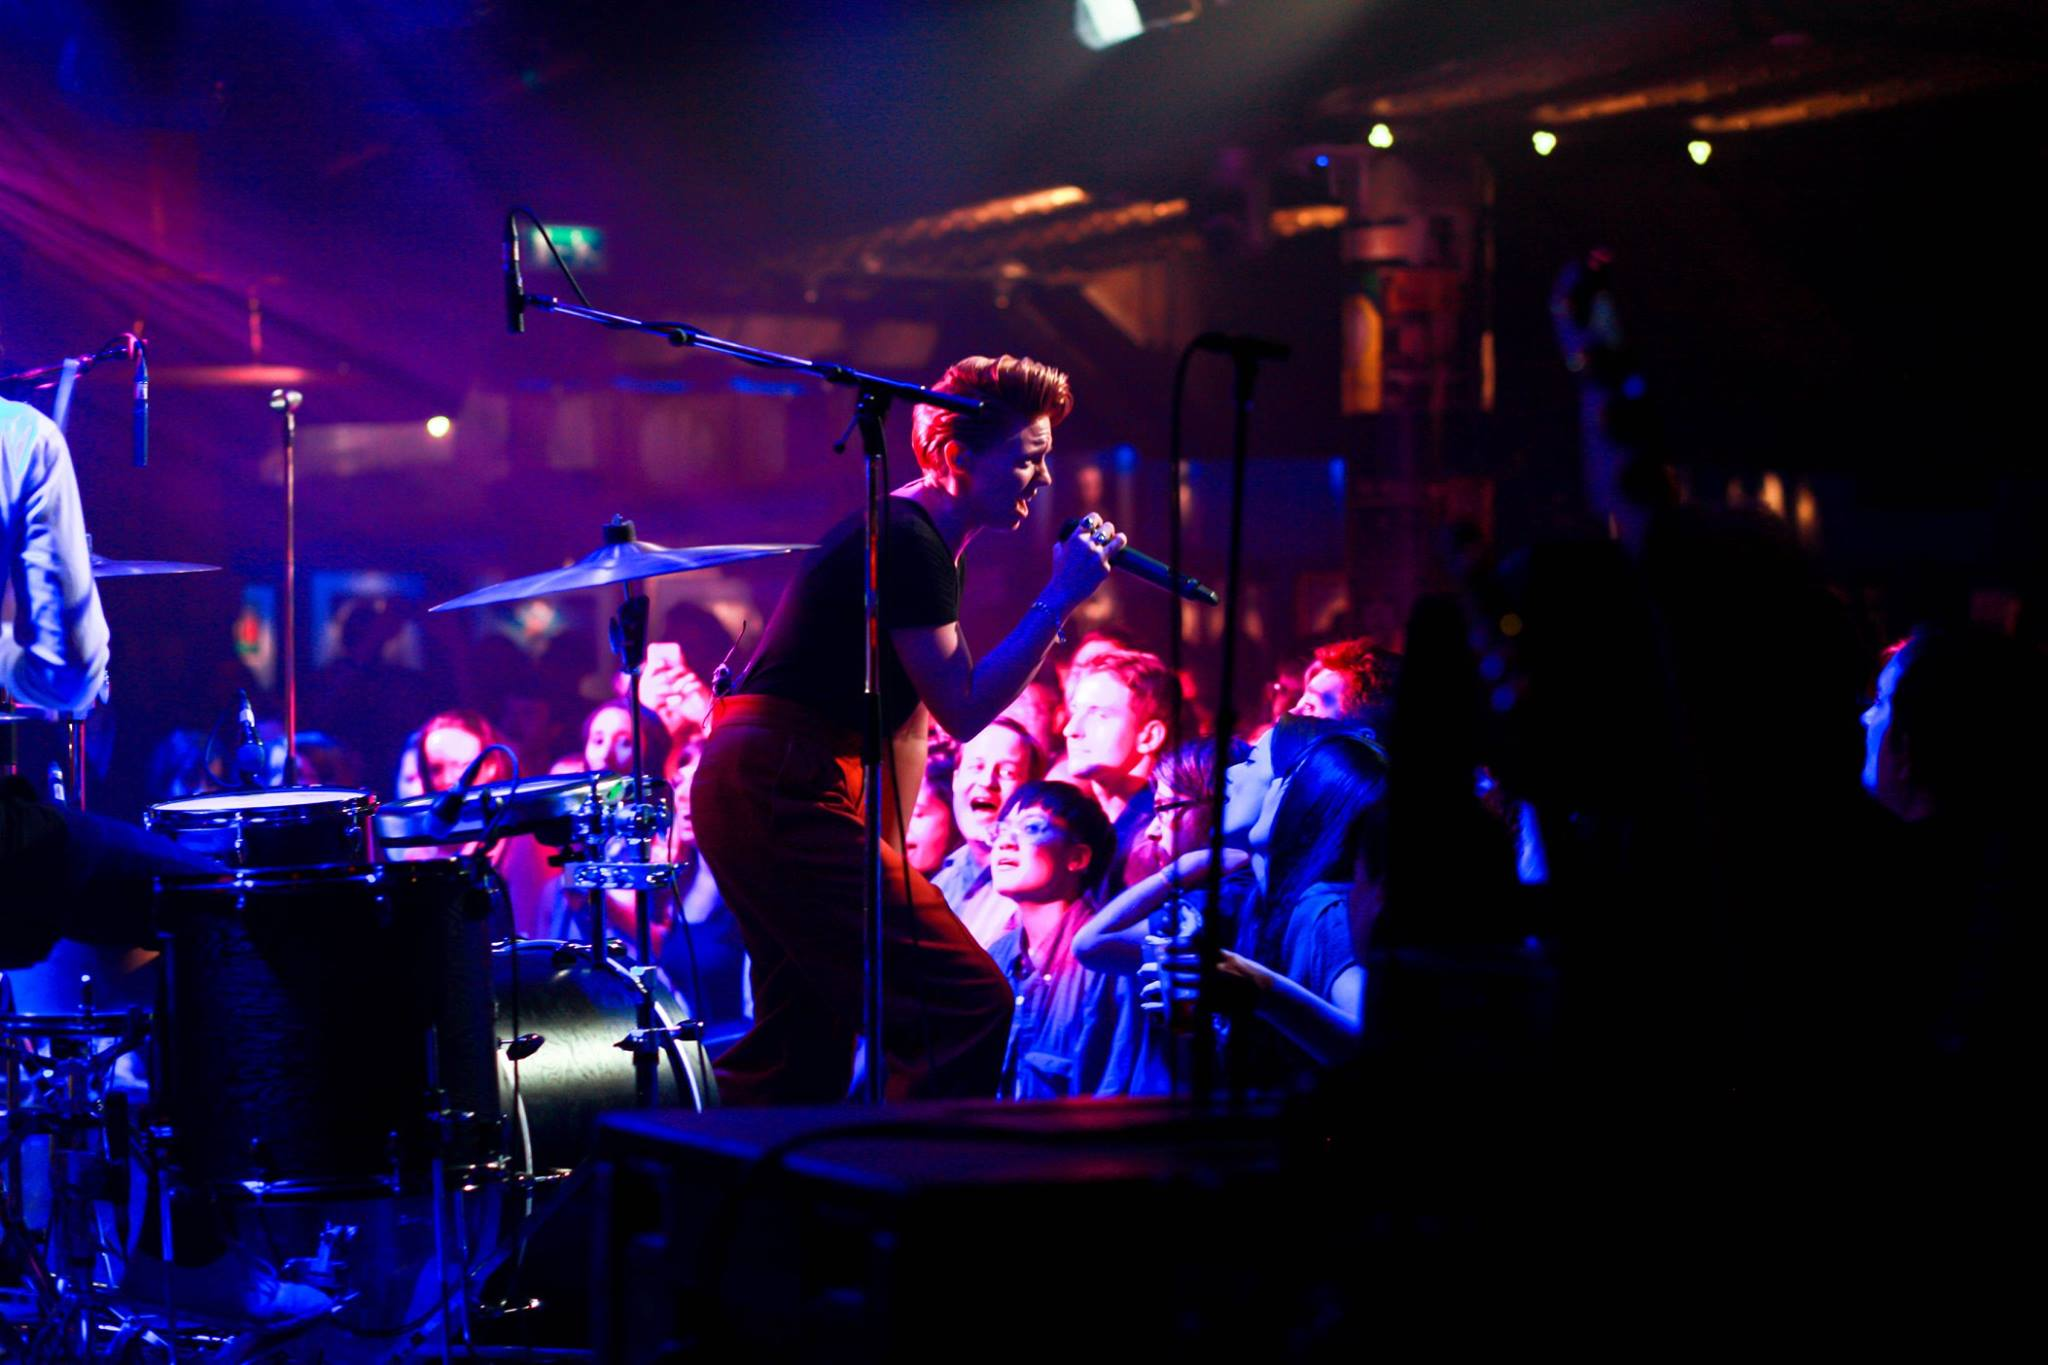 Where To Go For The Best Live Music in London | DesignMyNight